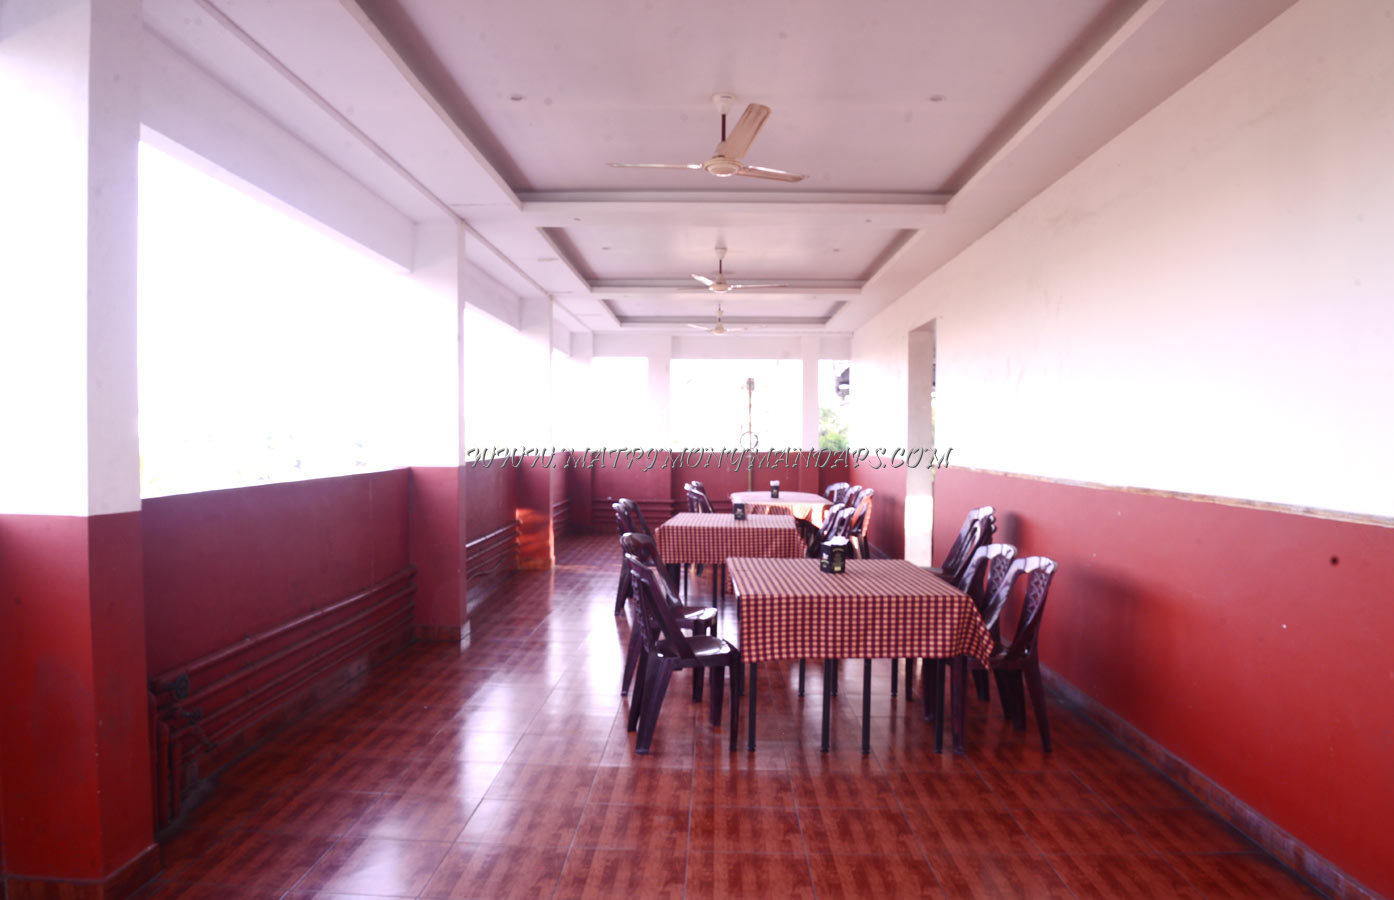 Find the availability of the Nandanam Park Nakshtatra Roof Top in Palayam, Trivandrum and avail special offers